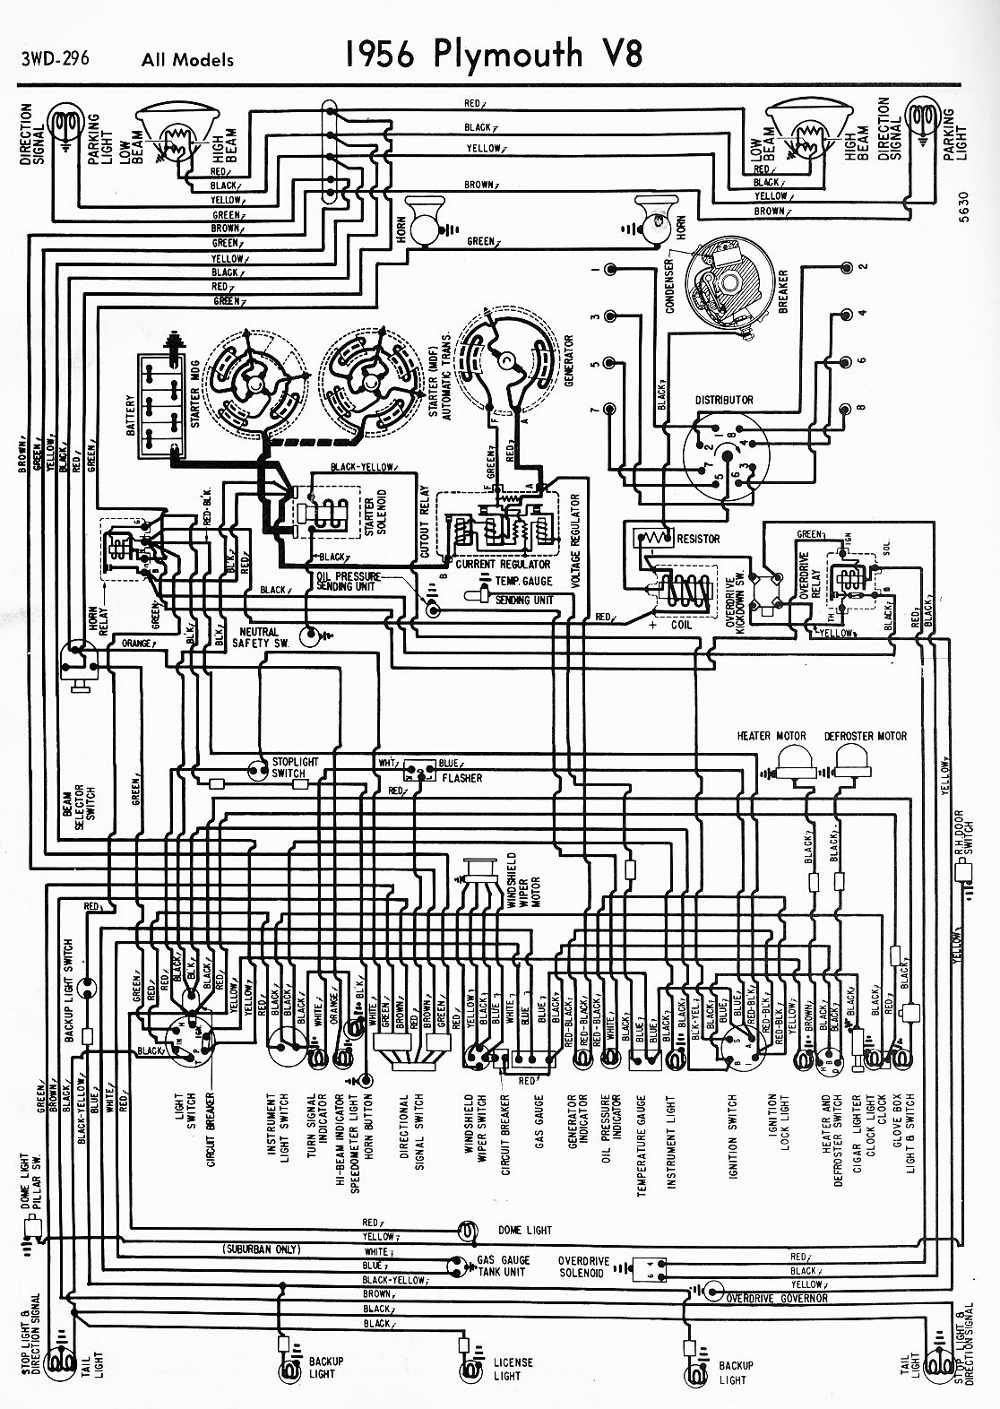 1956 Plymouth V8 All Models Wiring Diagram